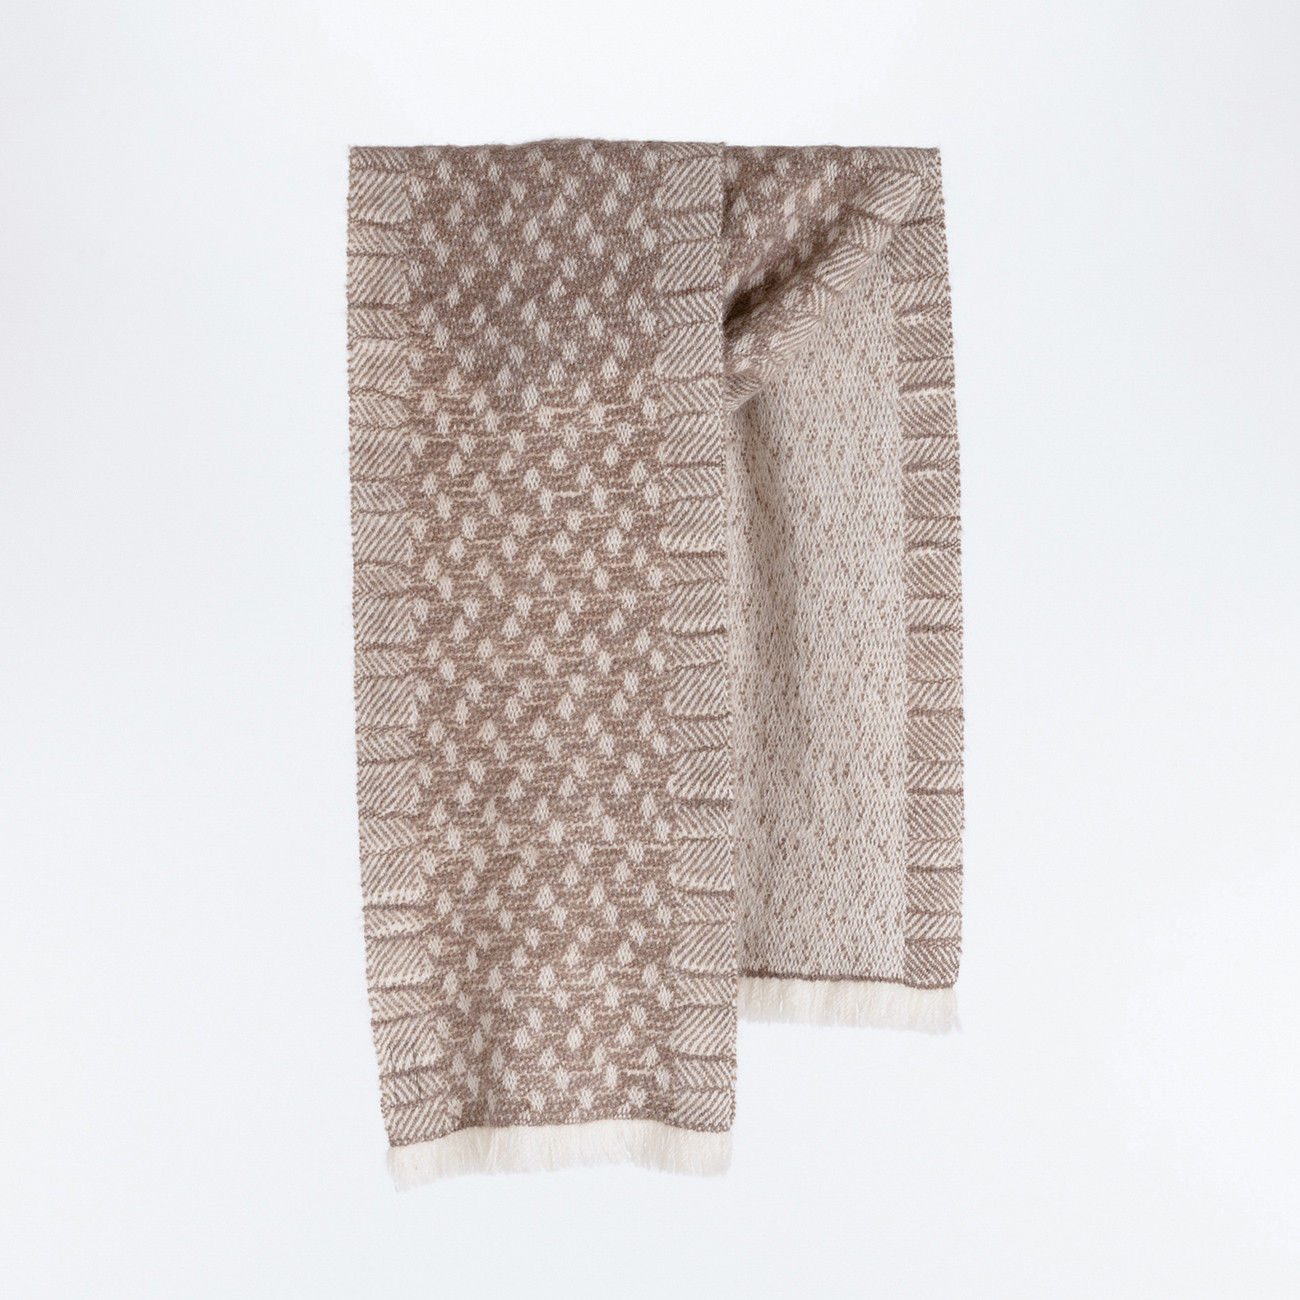 Handwoven Pebble Scarf - Natural Silver Brown and White Alpaca - 0